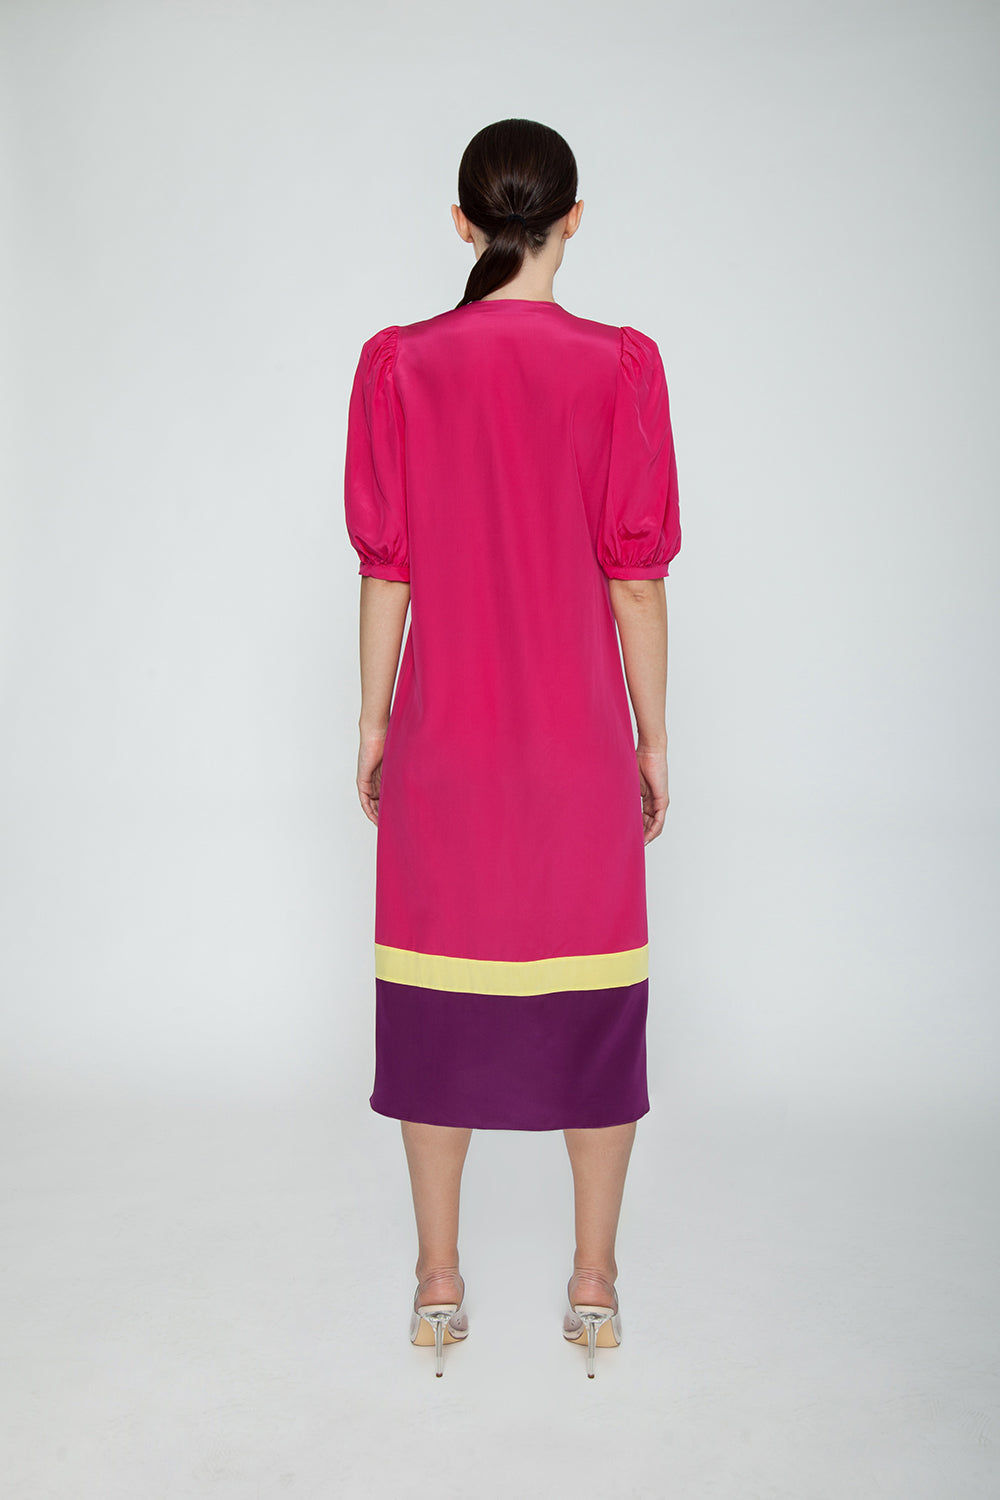 ADRIANA DEGREAS Silk Crepe De Chine Tricolor Midi Robe - Hot Pink/Citronelle/Purple Cover Up | Hot Pink/Citronelle/Purple| Adriana Degreas Silk Crepe De Chine Tricolor Midi Robe - Hot Pink/Citronelle/Purple. Features: Features:  Lightweight silk robe Designed for a cool, breezy feel Midi silk robe with long sleeve and gathered cuffs Waist tie to define the silhouette Unlined Main: 100% silk. Back View